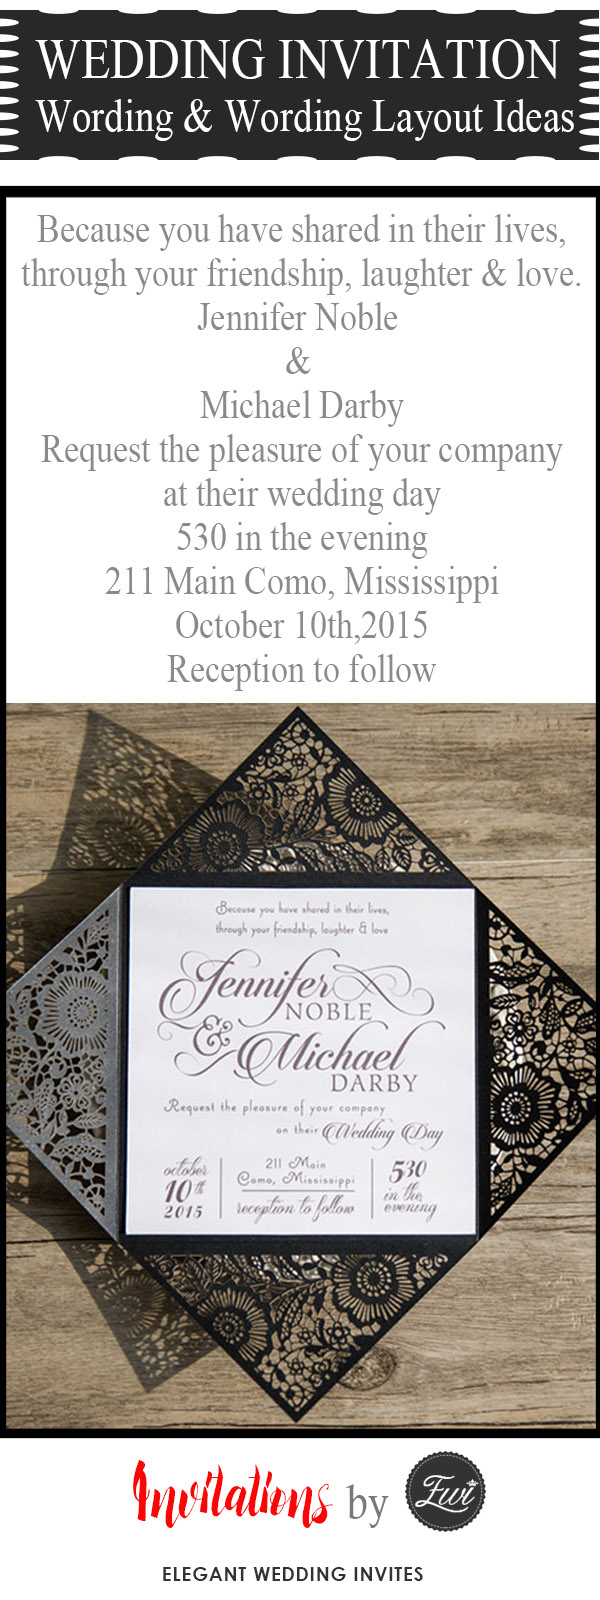 wedding invitaiton wording and wording layout ideas